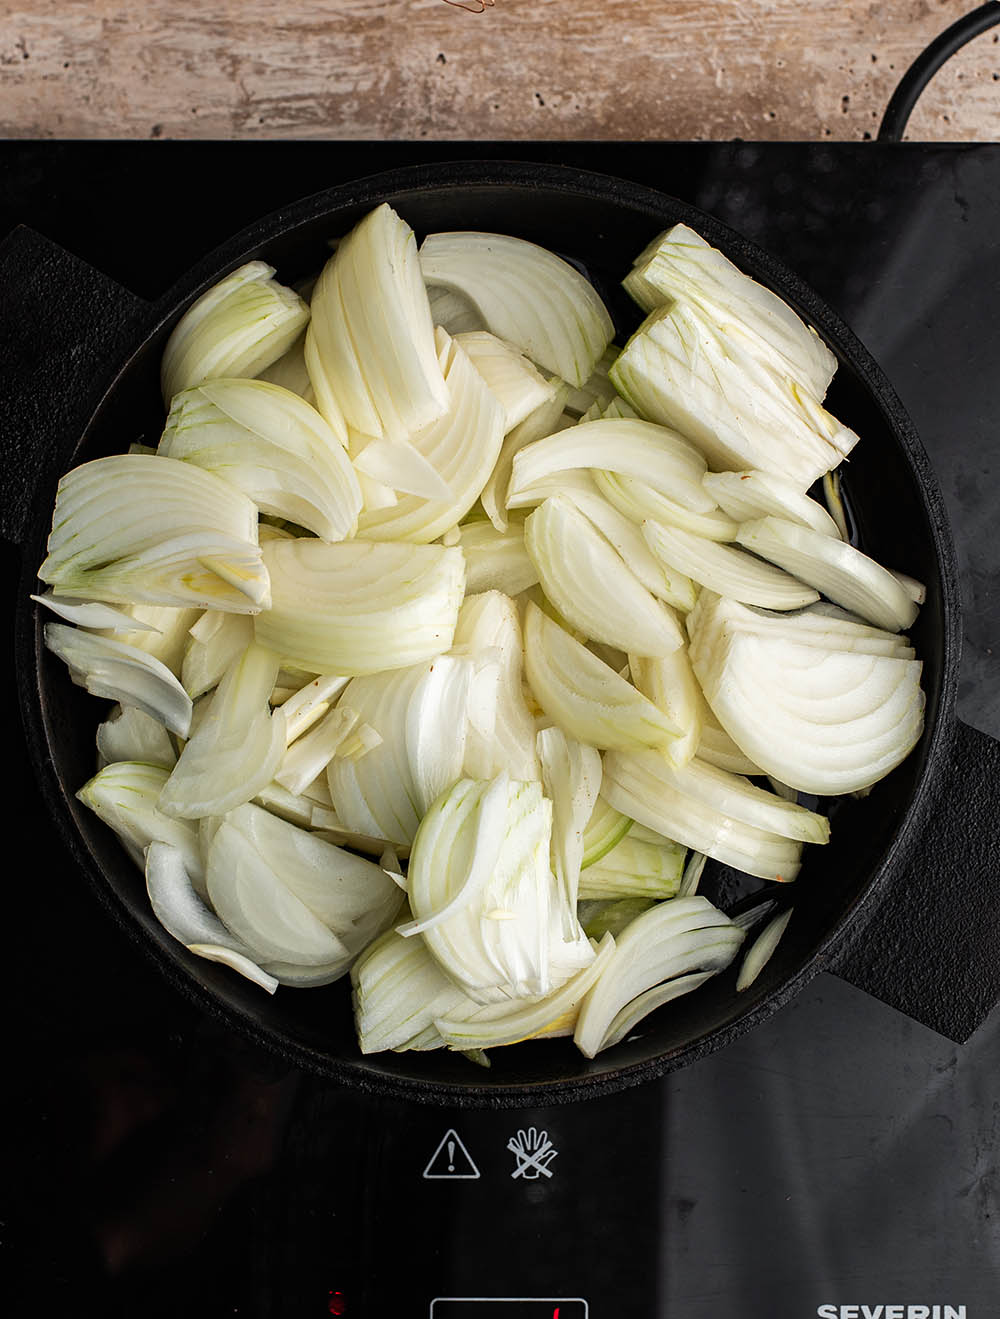 Raw onion slices added to the pan.